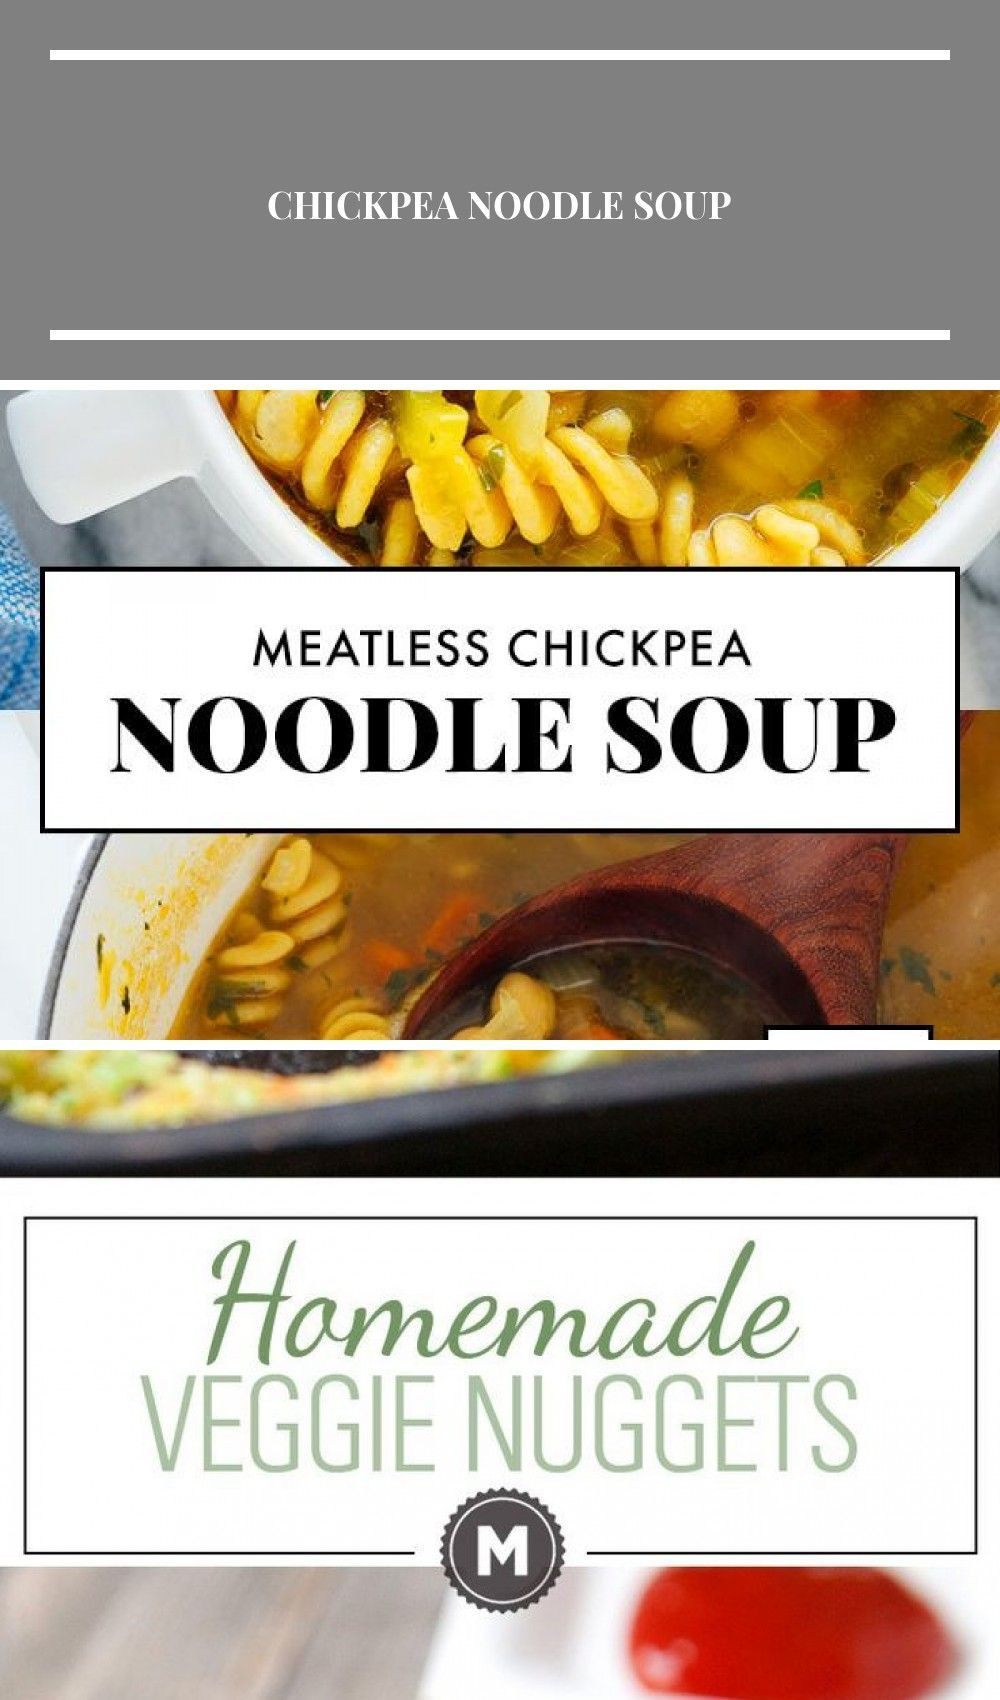 This noodle soup is made with chickpeas instead of chicken! It's the perfect vegetarian/vegan soup for when you're feeling under the weather or craving familiar, comfort food flavors. #noodlesoup #vegan #vegetarian #plantbased #comfortfood #chickpeas #cookieandkate vegetarian Chickpea Noodle Soup #chickpeanoodlesoup This noodle soup is made with chickpeas instead of chicken! It's the perfect vegetarian/vegan soup for when you're feeling under the weather or craving familiar, comfort food flavors #chickpeanoodlesoup